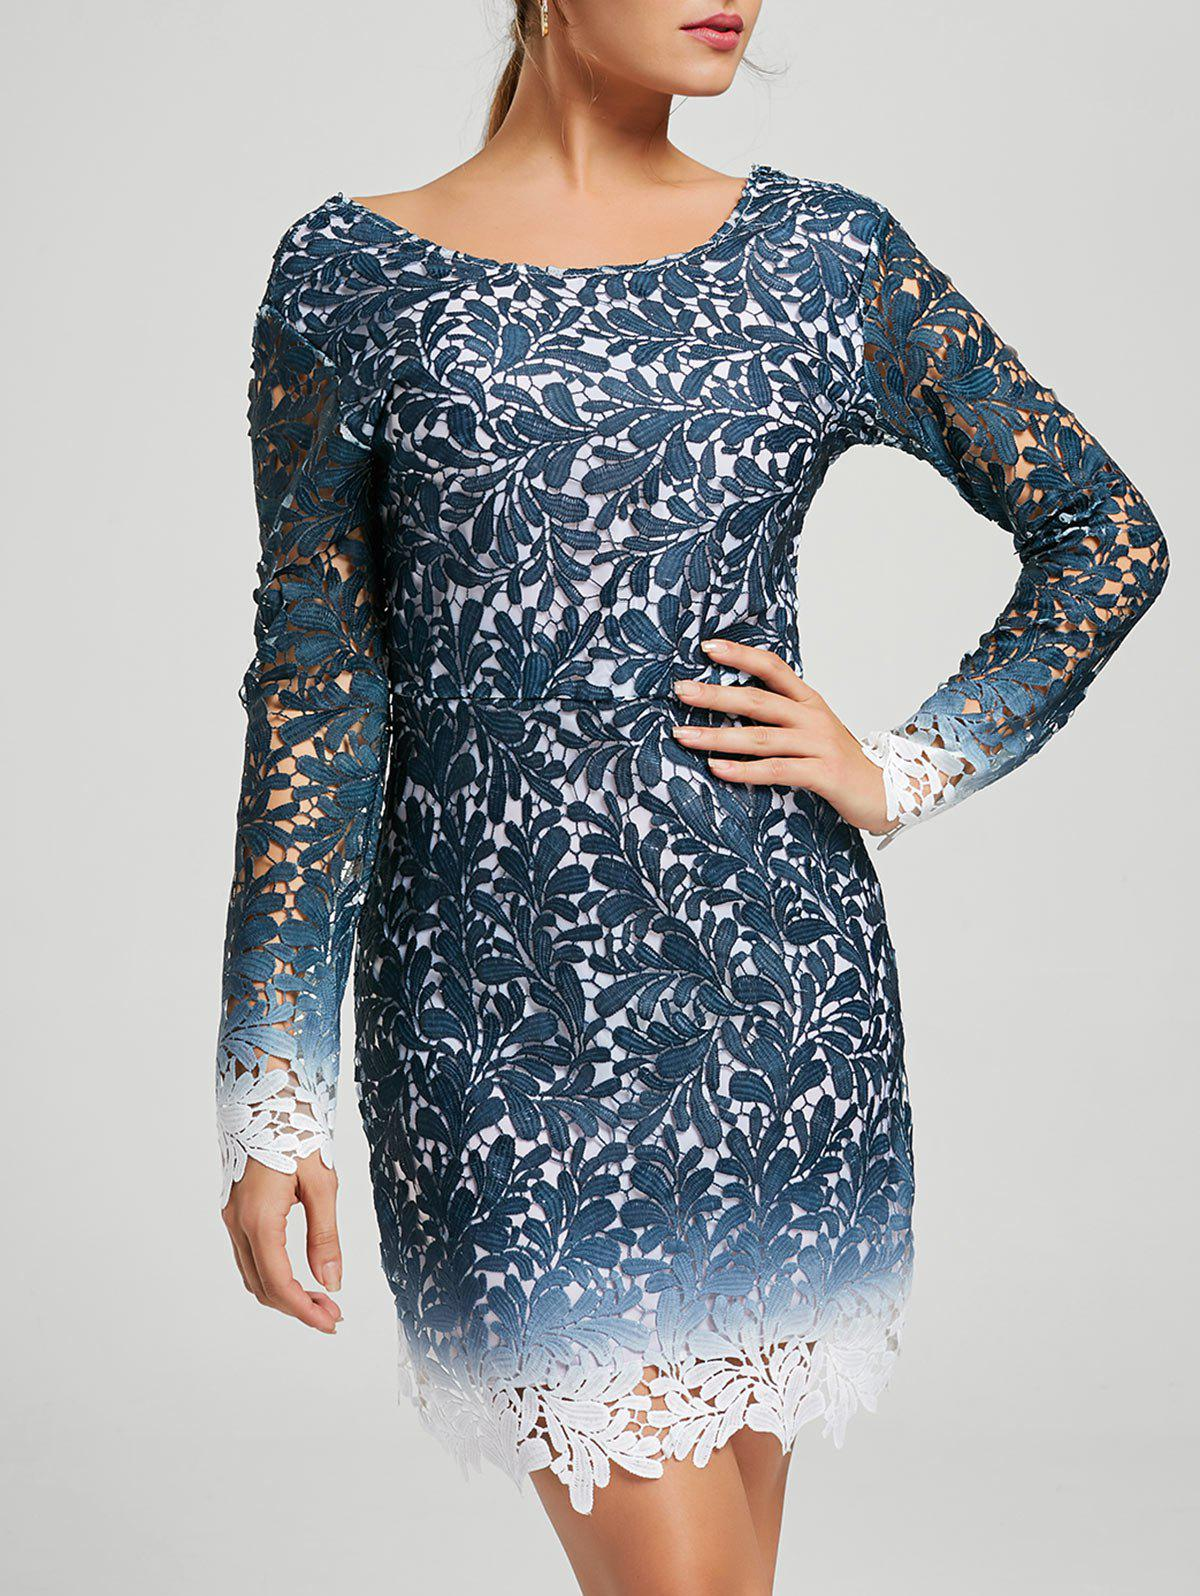 Ombre Lace Long Sleeve Open Back Dress - BLUE S